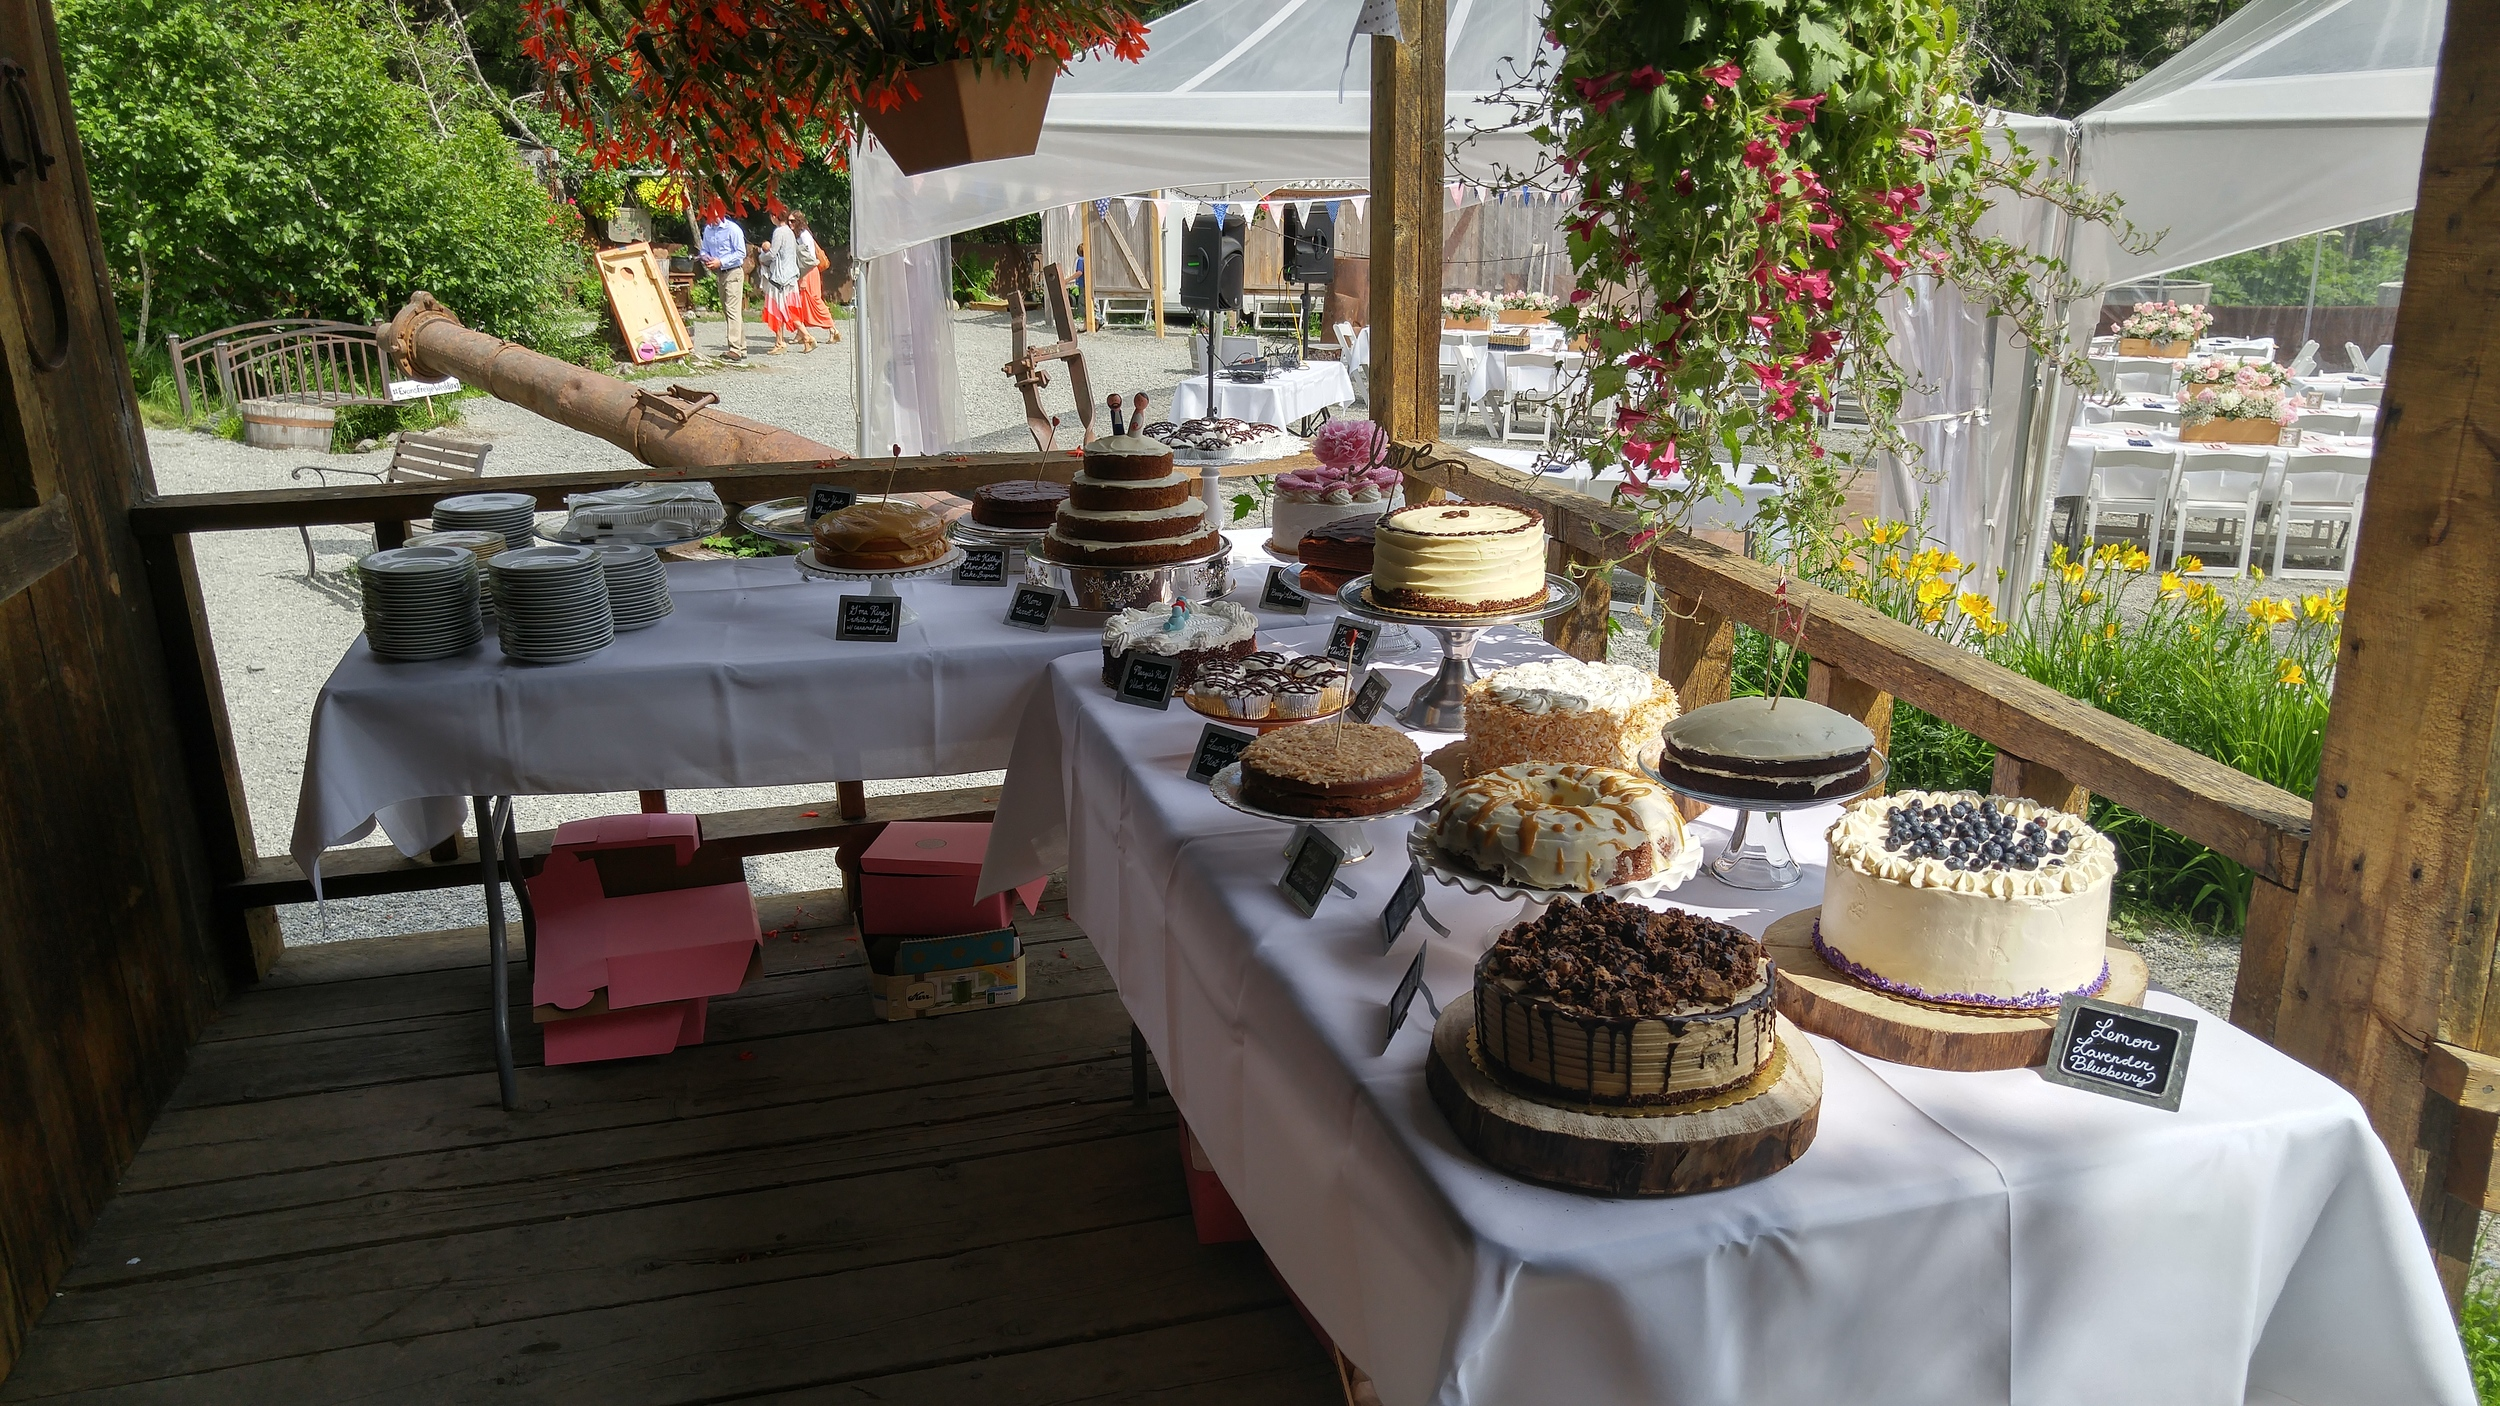 Our cake table! We had antique floral dishes and fifteen different cakes-- some homemade and the rest supplemented by Celestial Sweets. My favorite is still my Mom's Carrot Cake!